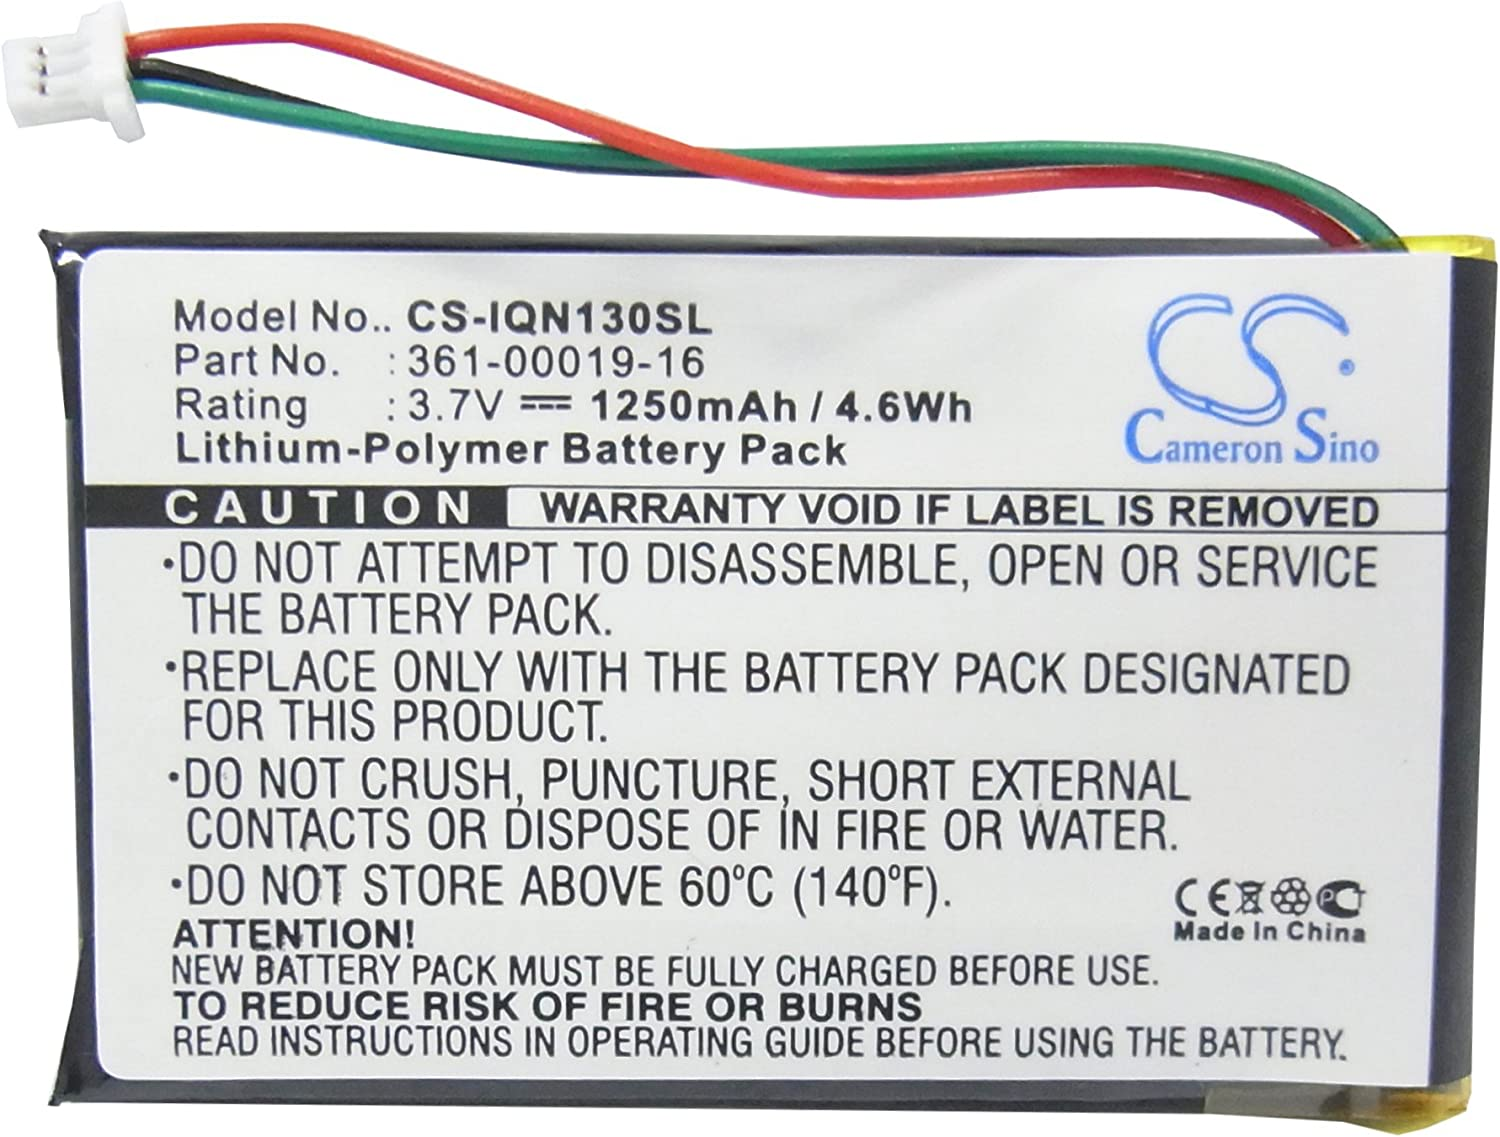 Replacement Battery Sales of SALE items from new works for Gorgeous Garmin 1300 1350 1370 Nuvi